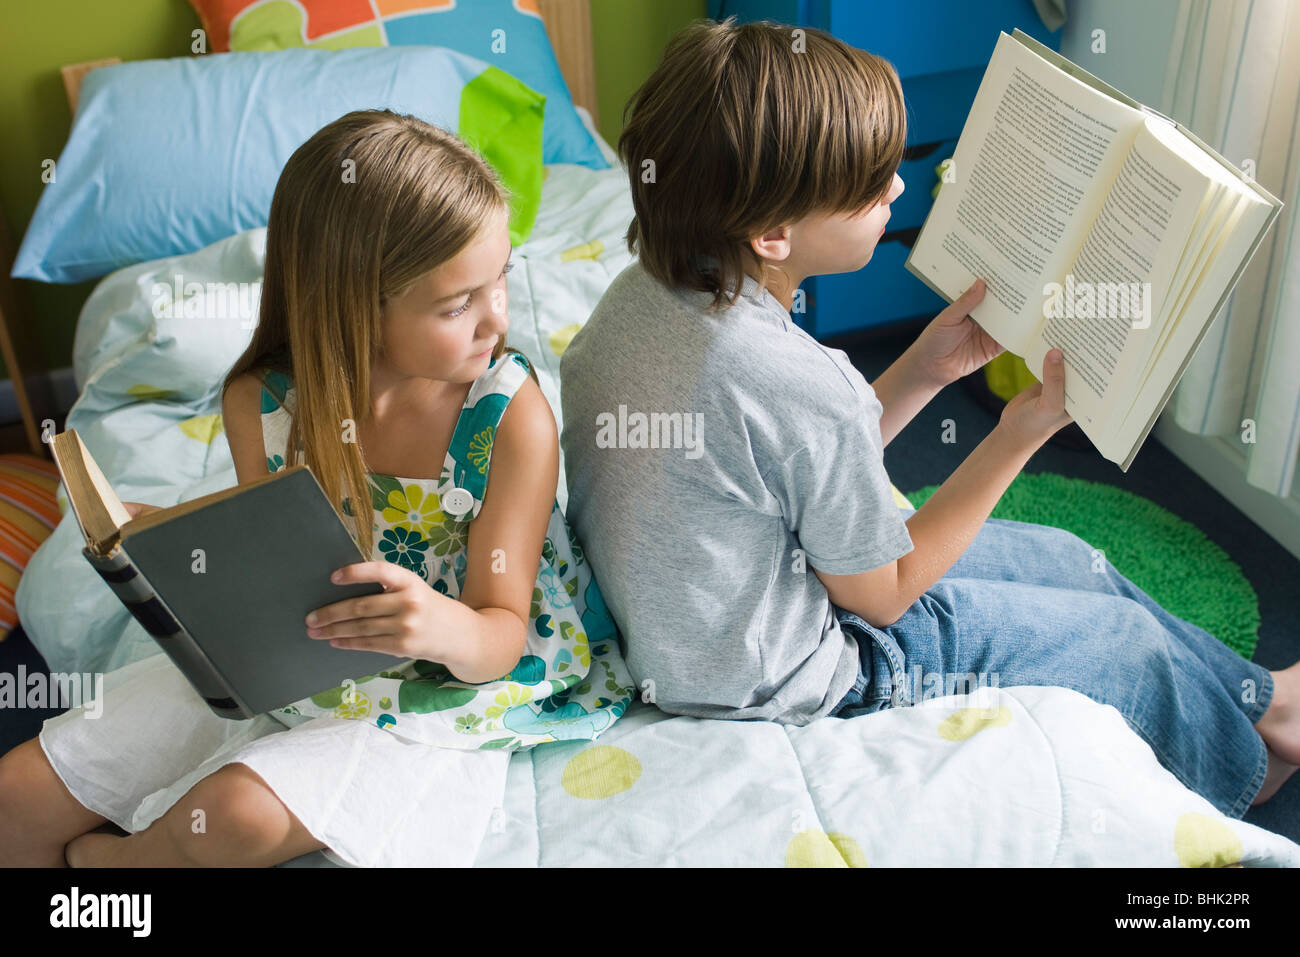 Siblings reading together, girl glancing over shoulder at brother's book - Stock Image